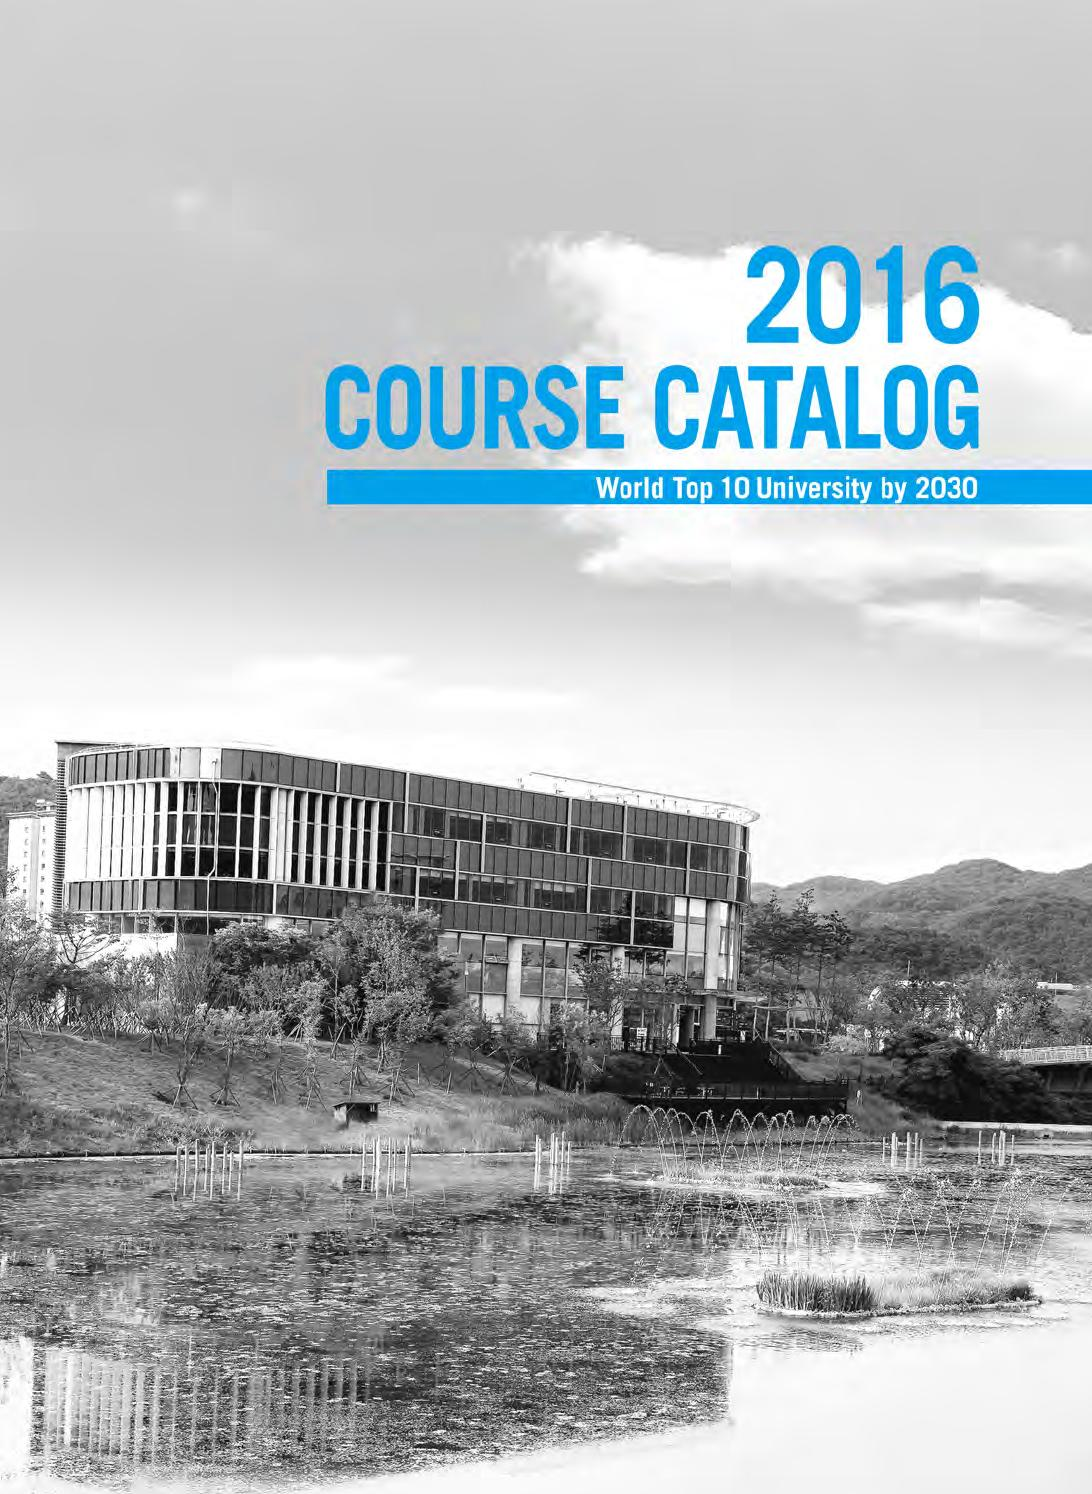 2016 Course Catalog Small By Pr Team Unist Issuu